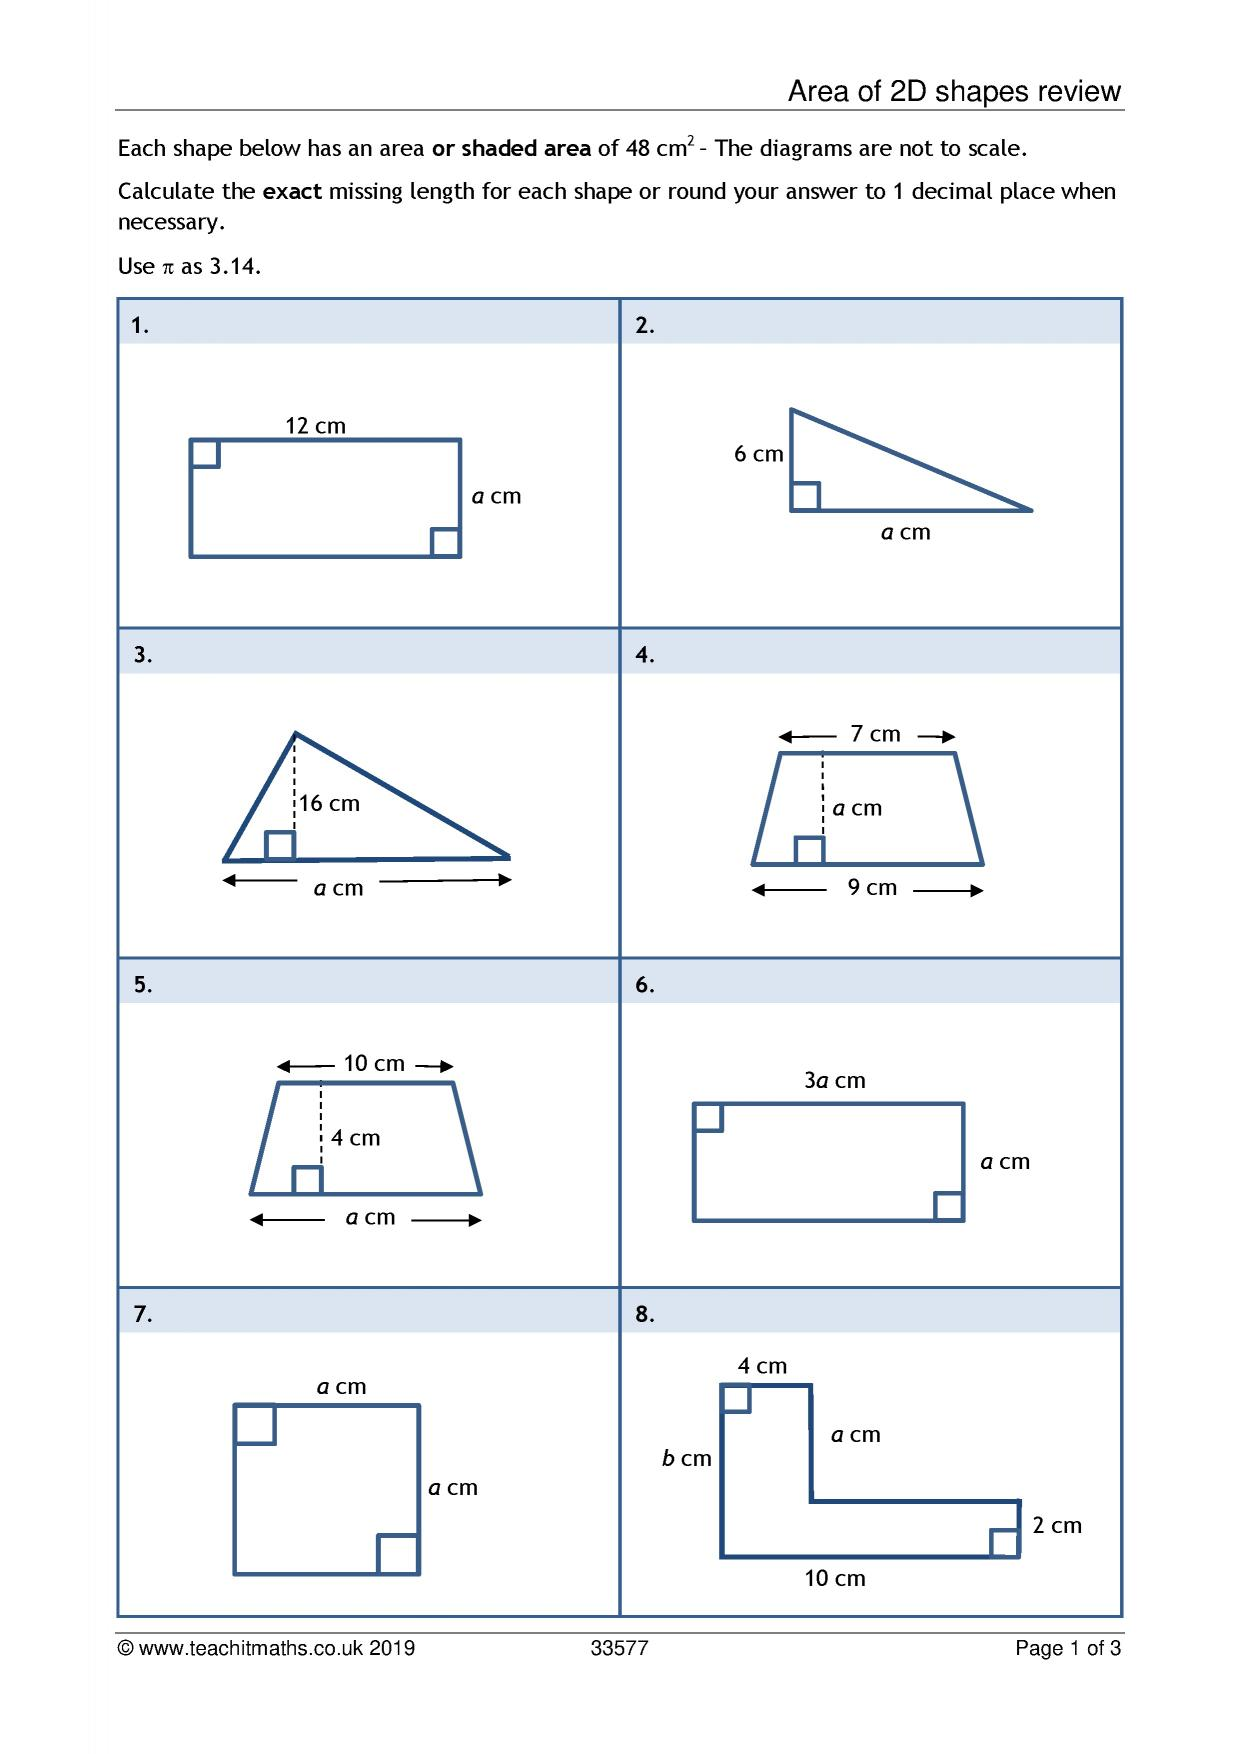 Surface Area Review Worksheet